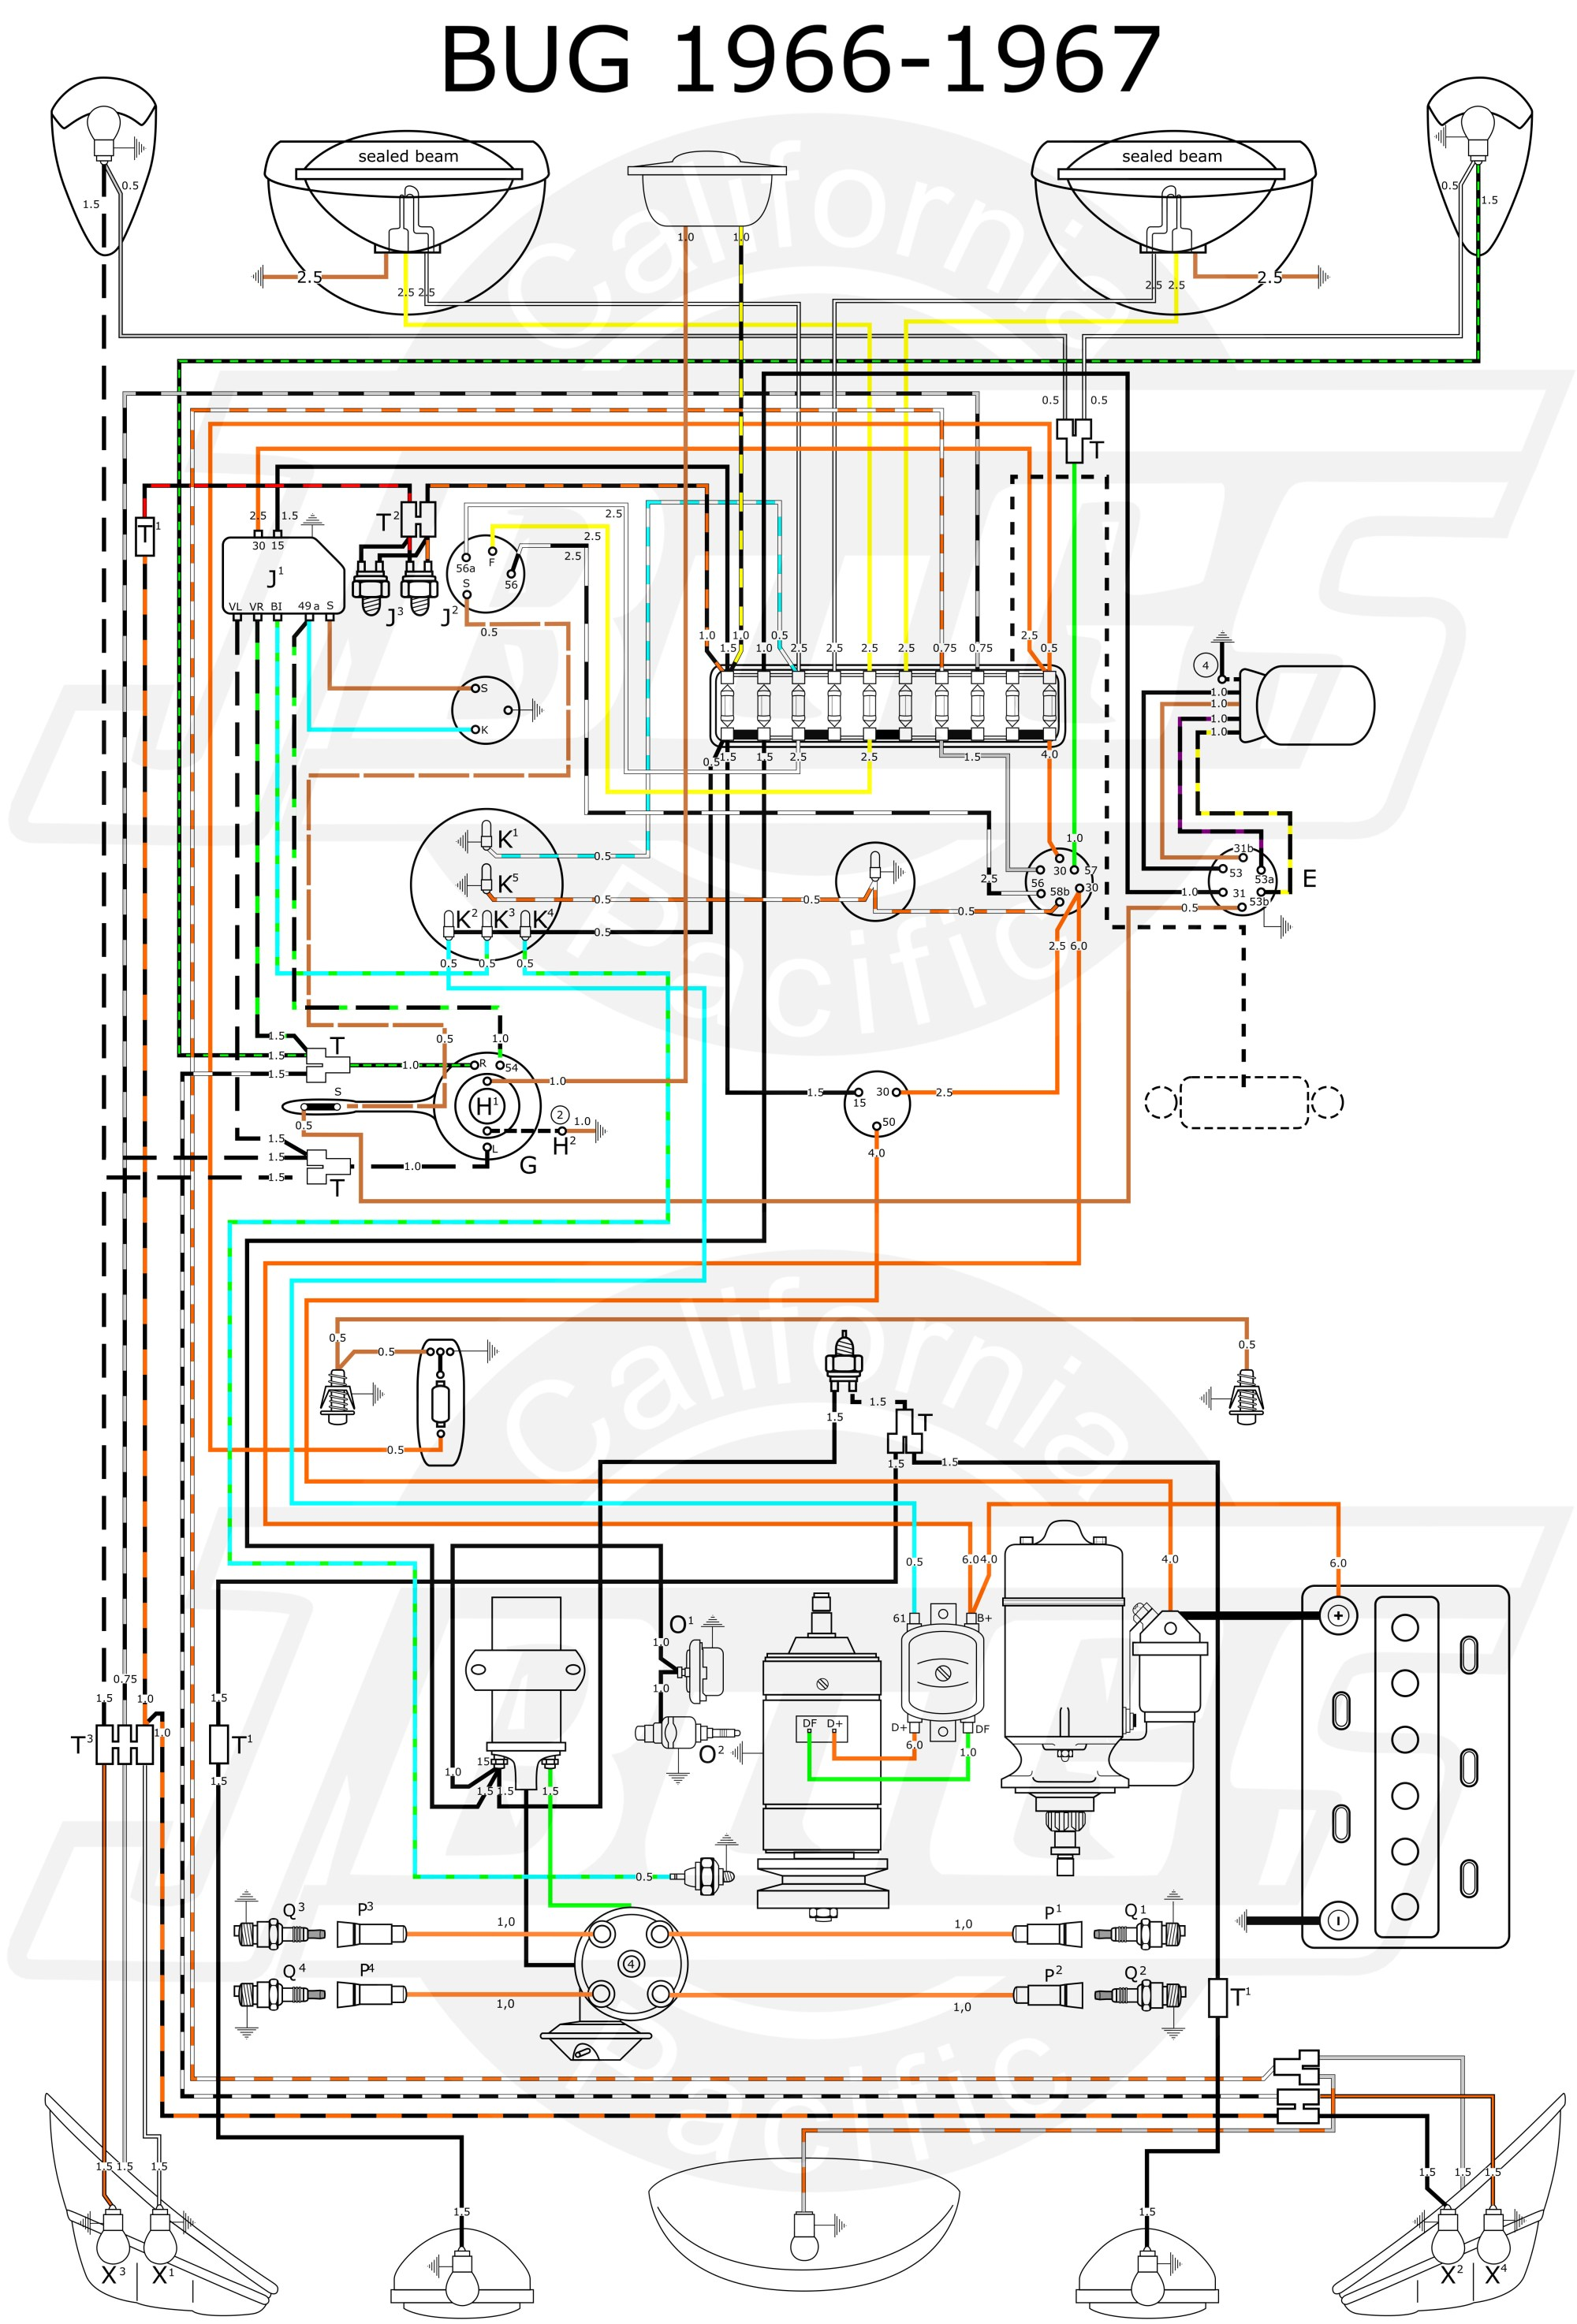 hight resolution of wiring a fiat 128 free ford 3000 gas wiring rco410 wiring diagram vw bug 1966 67